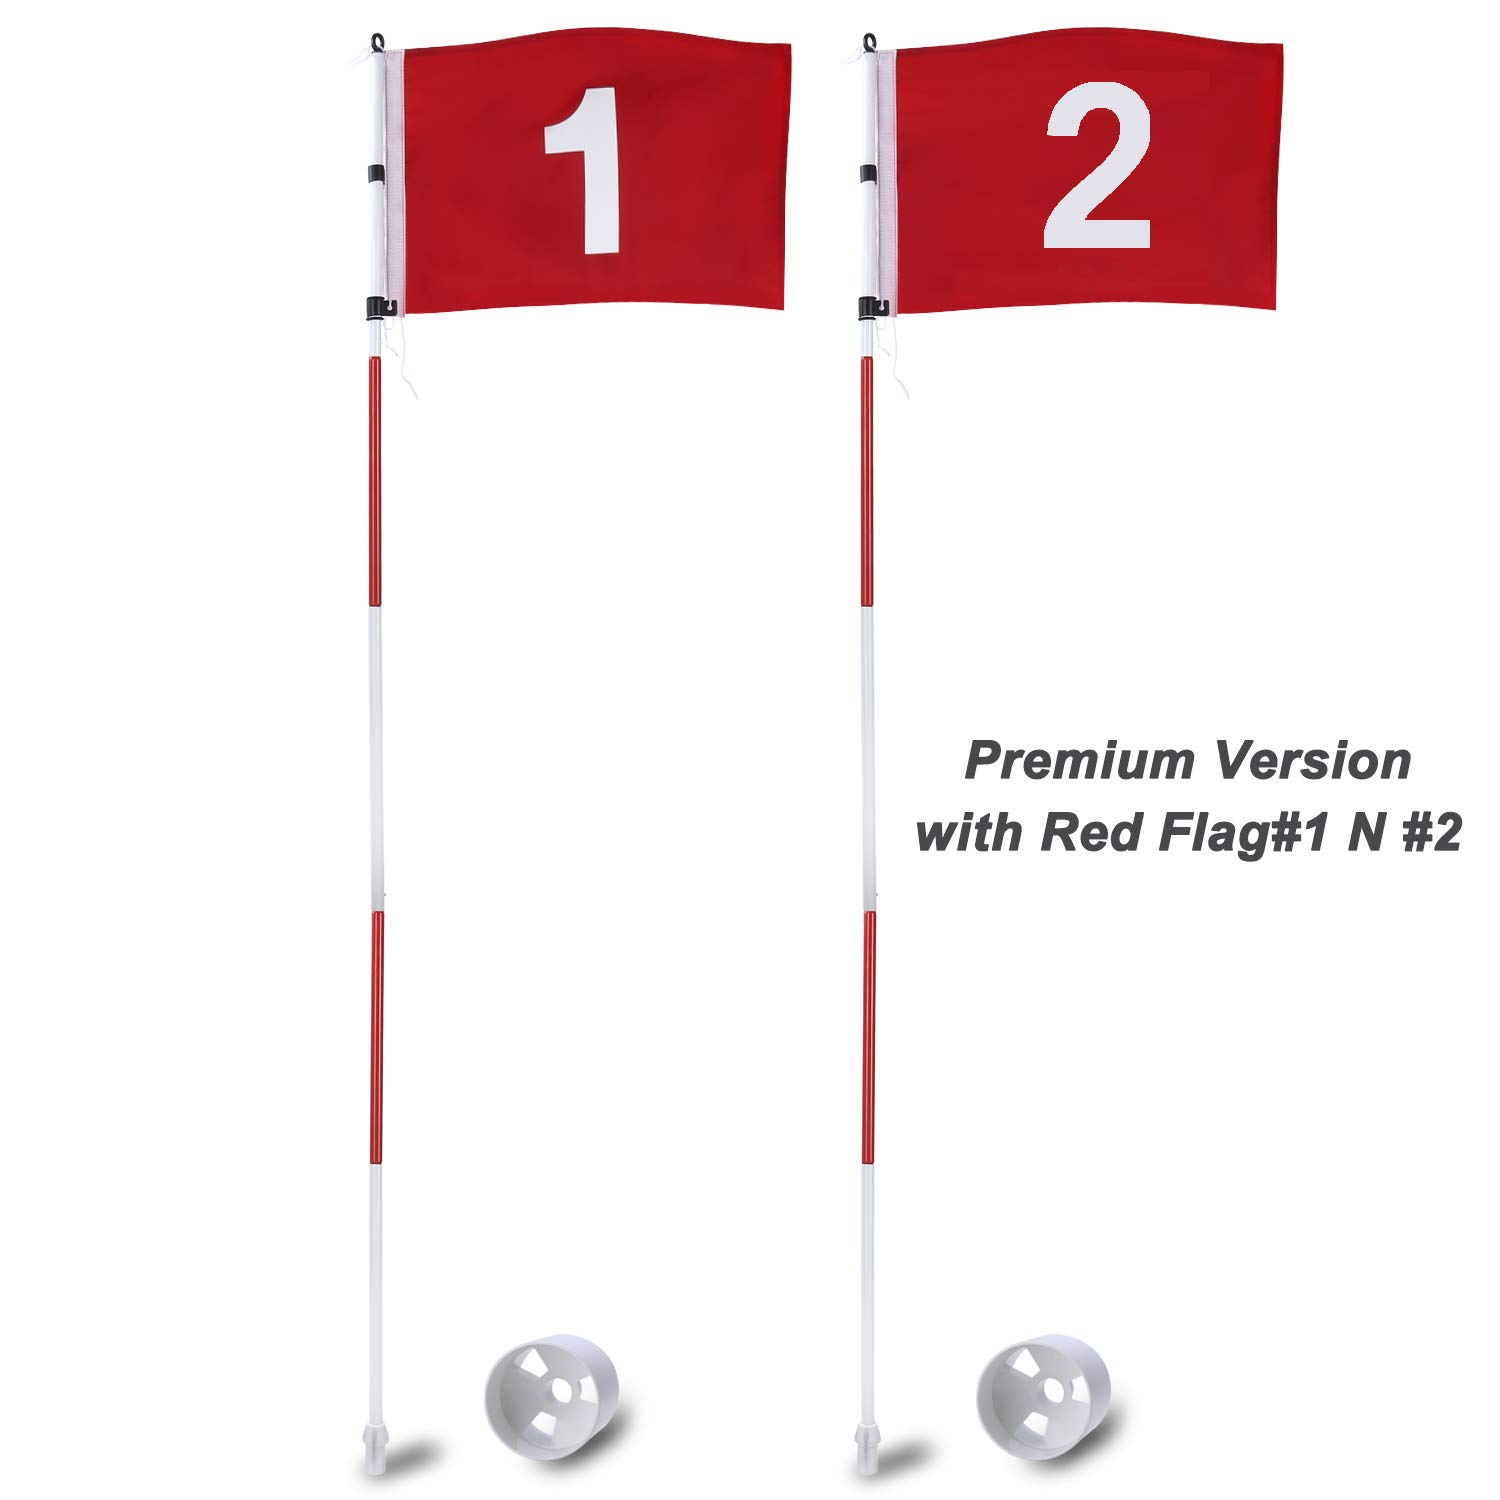 KINGTOP Golf Flags Stick, Practice Putting Green Flagstick Hole Cup Set, Golf Pin Flag for Driving Range/Backyard, Indoor/Outdoor, 5-Section Design, Solid Red Flag Numbered #1, 2, Both 71-inch, 2-Set by KINGTOP